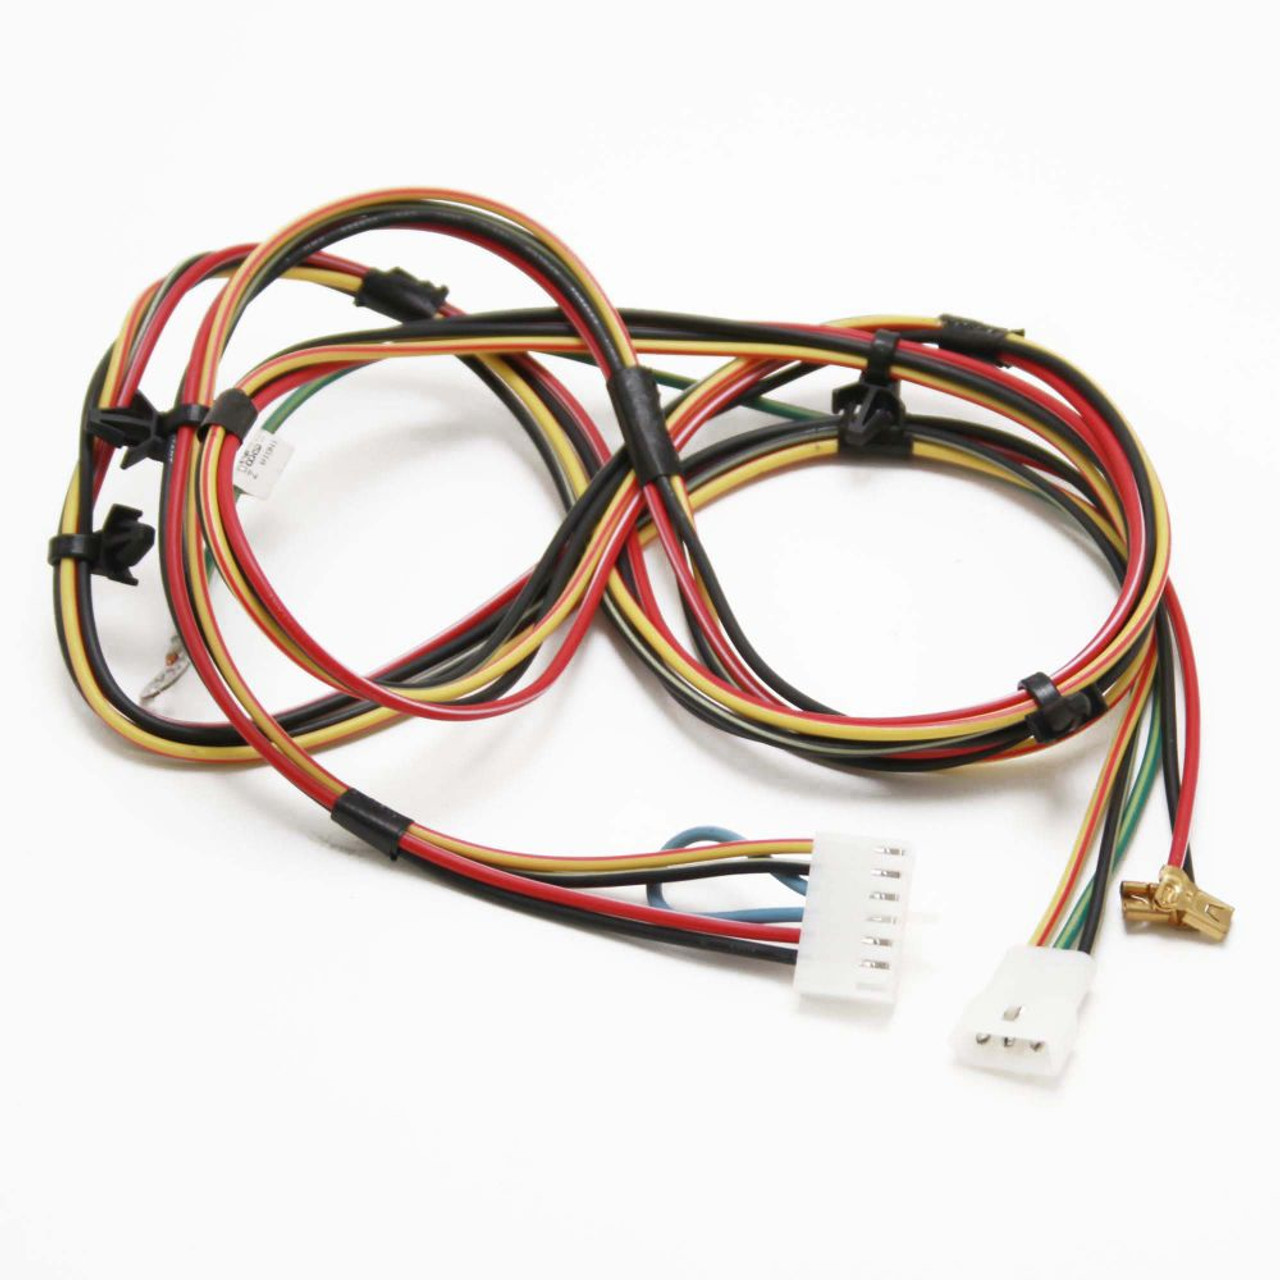 small resolution of  whirlpool 8299929 dryer wire harness 8299929